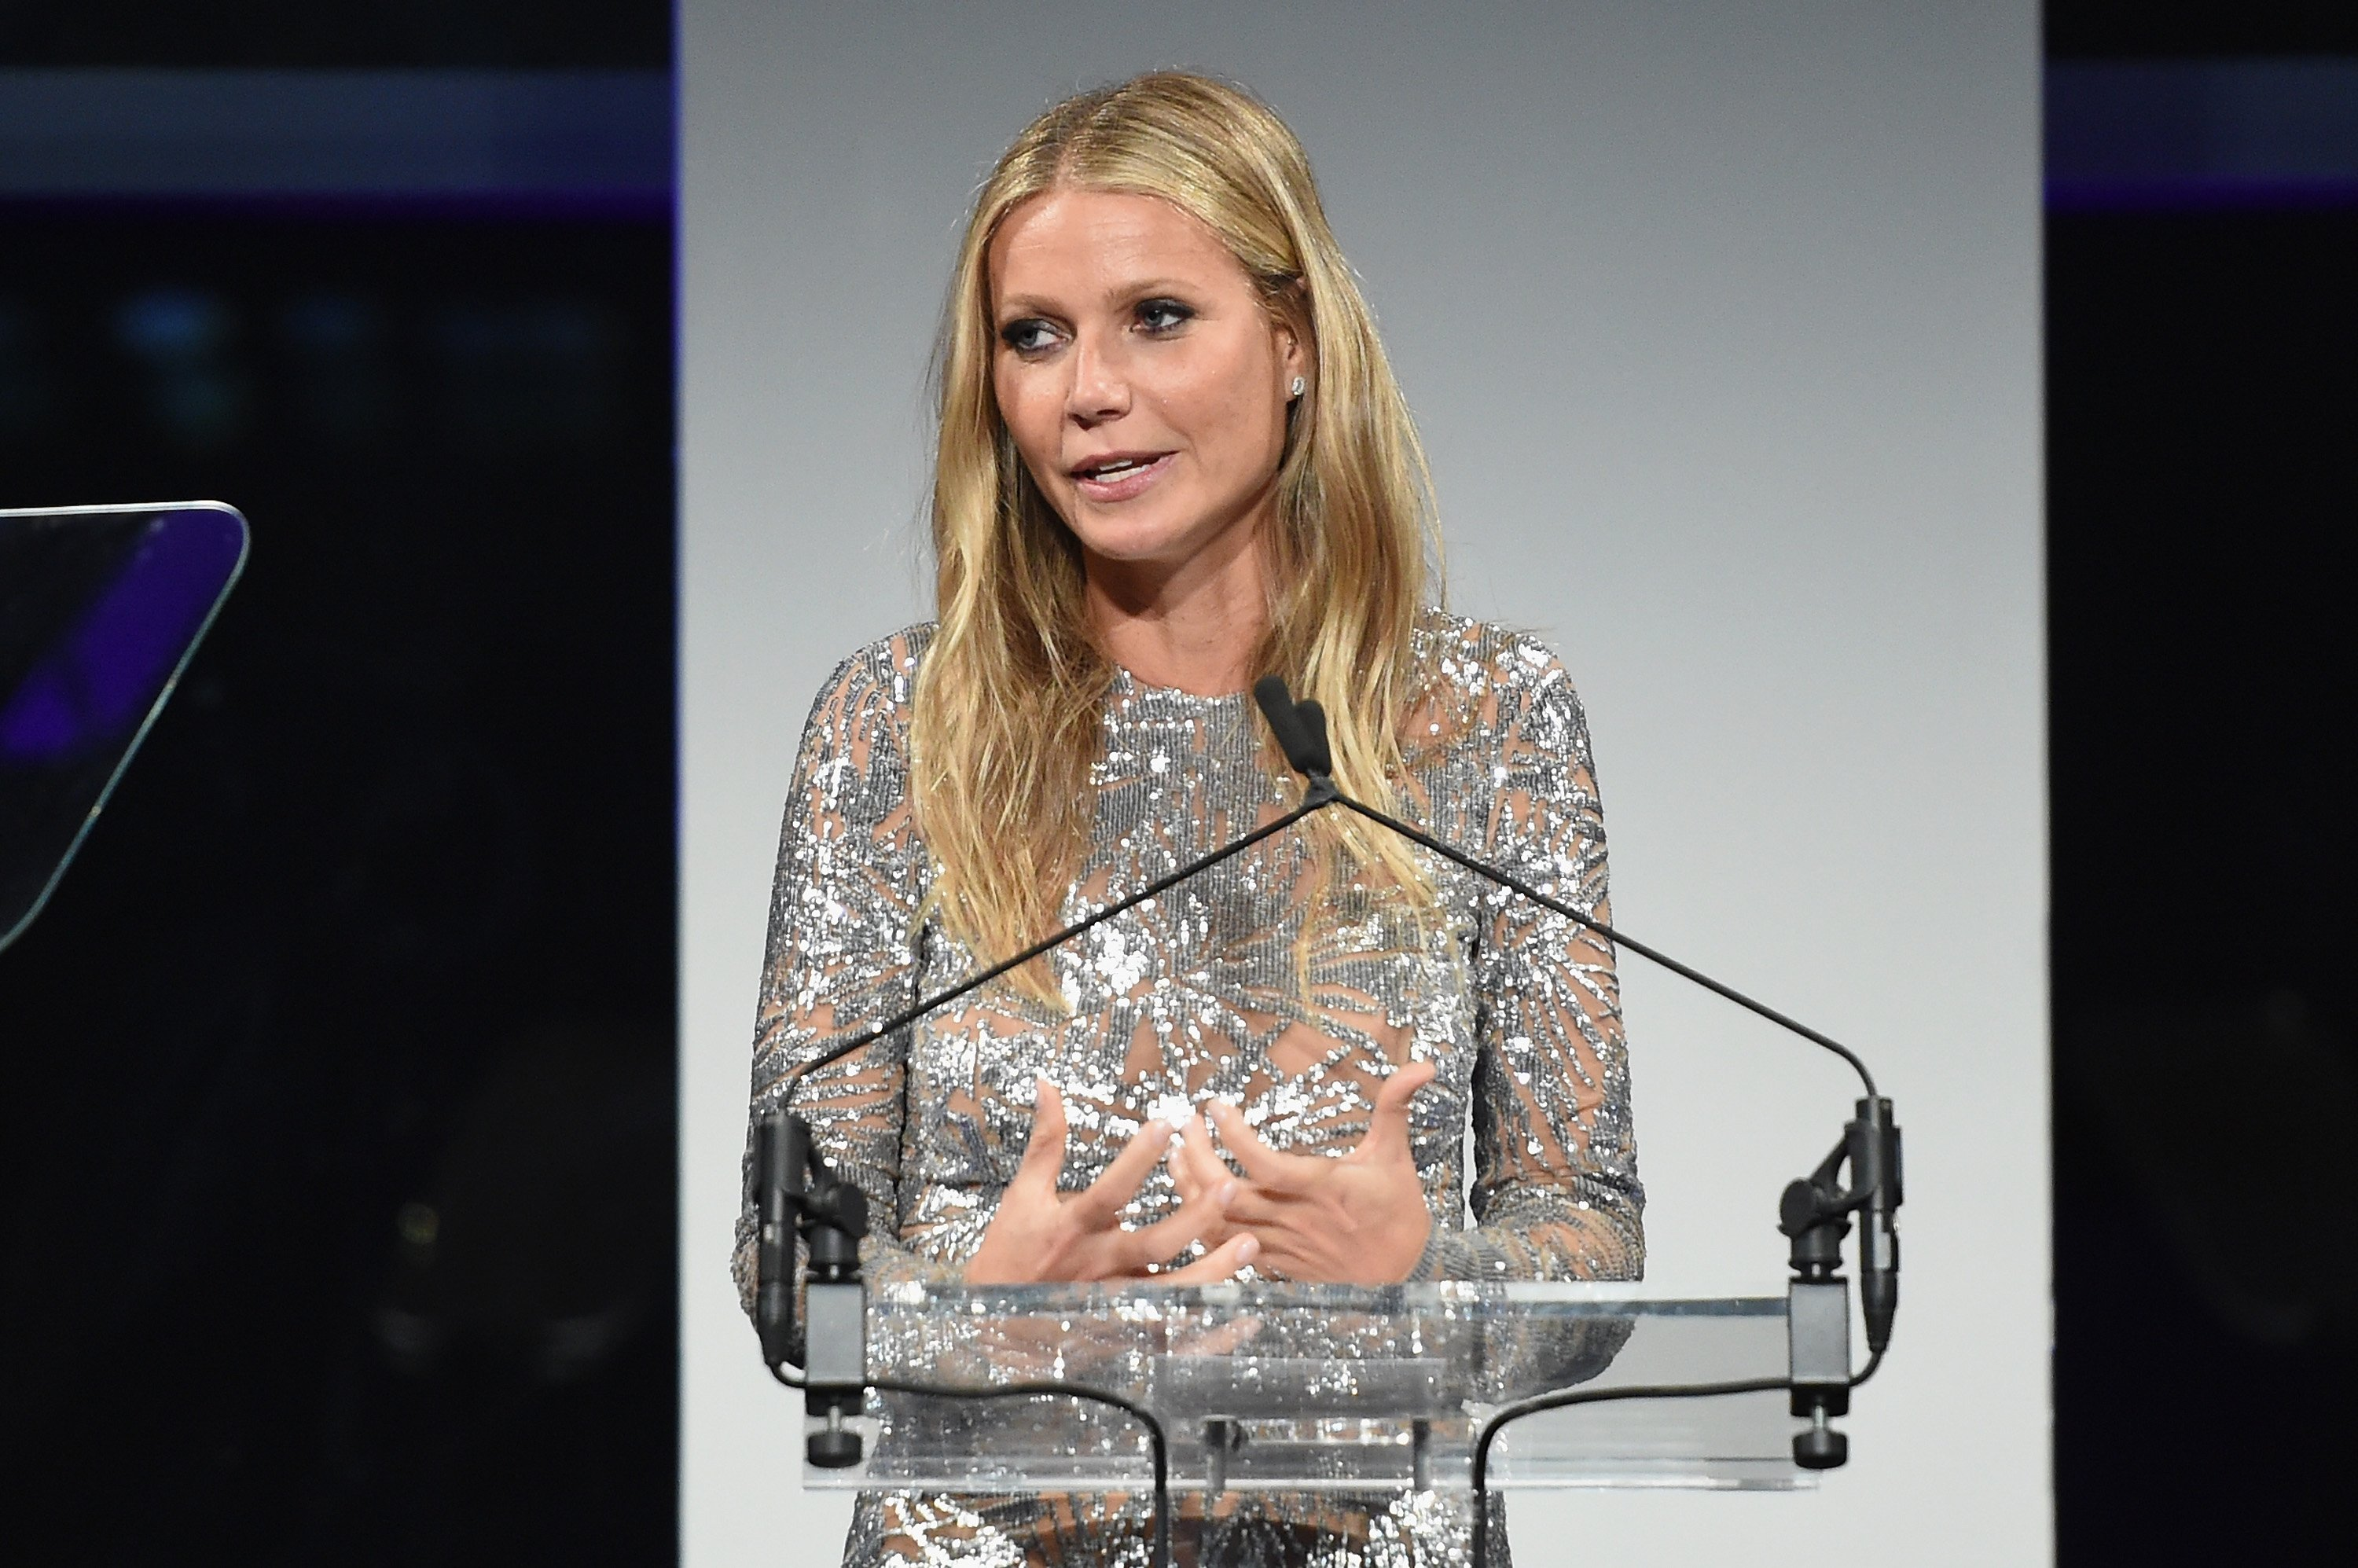 Image Credits: Getty Images / Jamie McCarthy | Gwyneth Paltrow speaks onstage during the 11th Annual Golden Heart Awards benefiting God's Love We Deliver on October 16, 2017 in New York City.